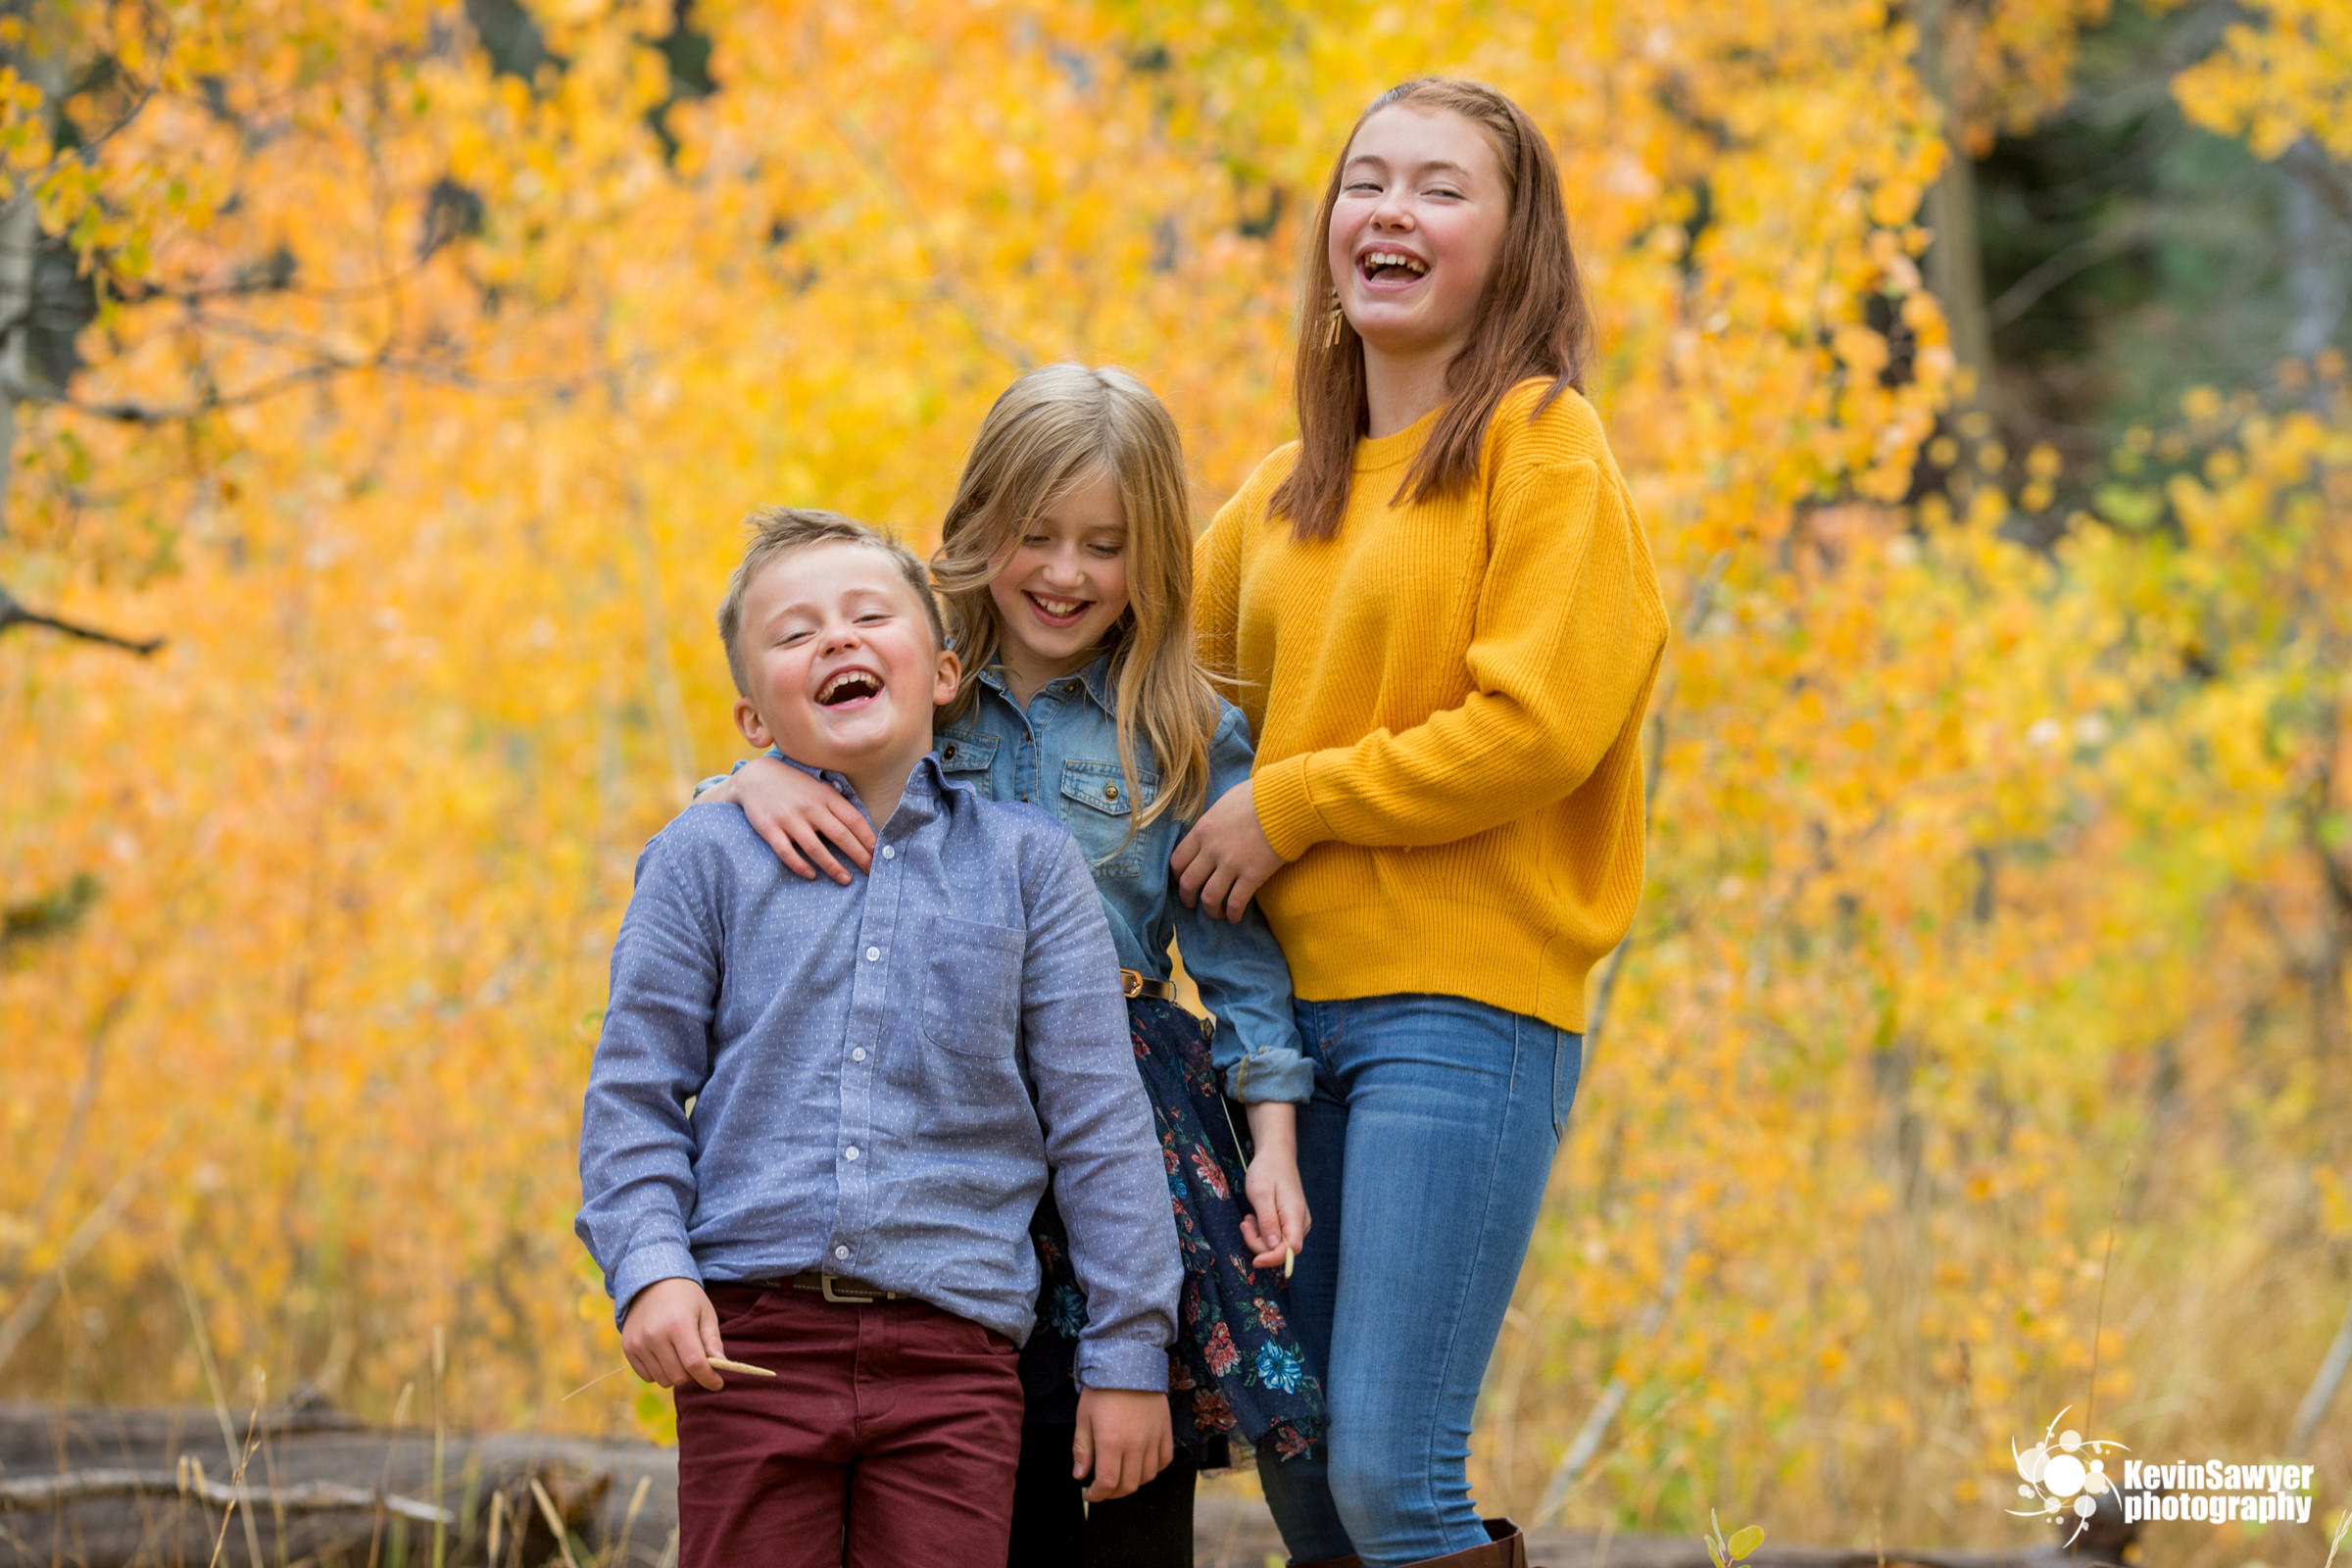 kevin-sawyer-photography-lake-tahoe-truckee-family-journalist-kids-dog-puppy-canine-photographer-laketahoe-candids-familyphotographer-photos-fall-autumn—brother-sister-mom-dad-colors-shack-hut-yellow-oranges-love-kidswillbekids-photojournalist-goofy-fun-lab-meadow-field-holdinghands